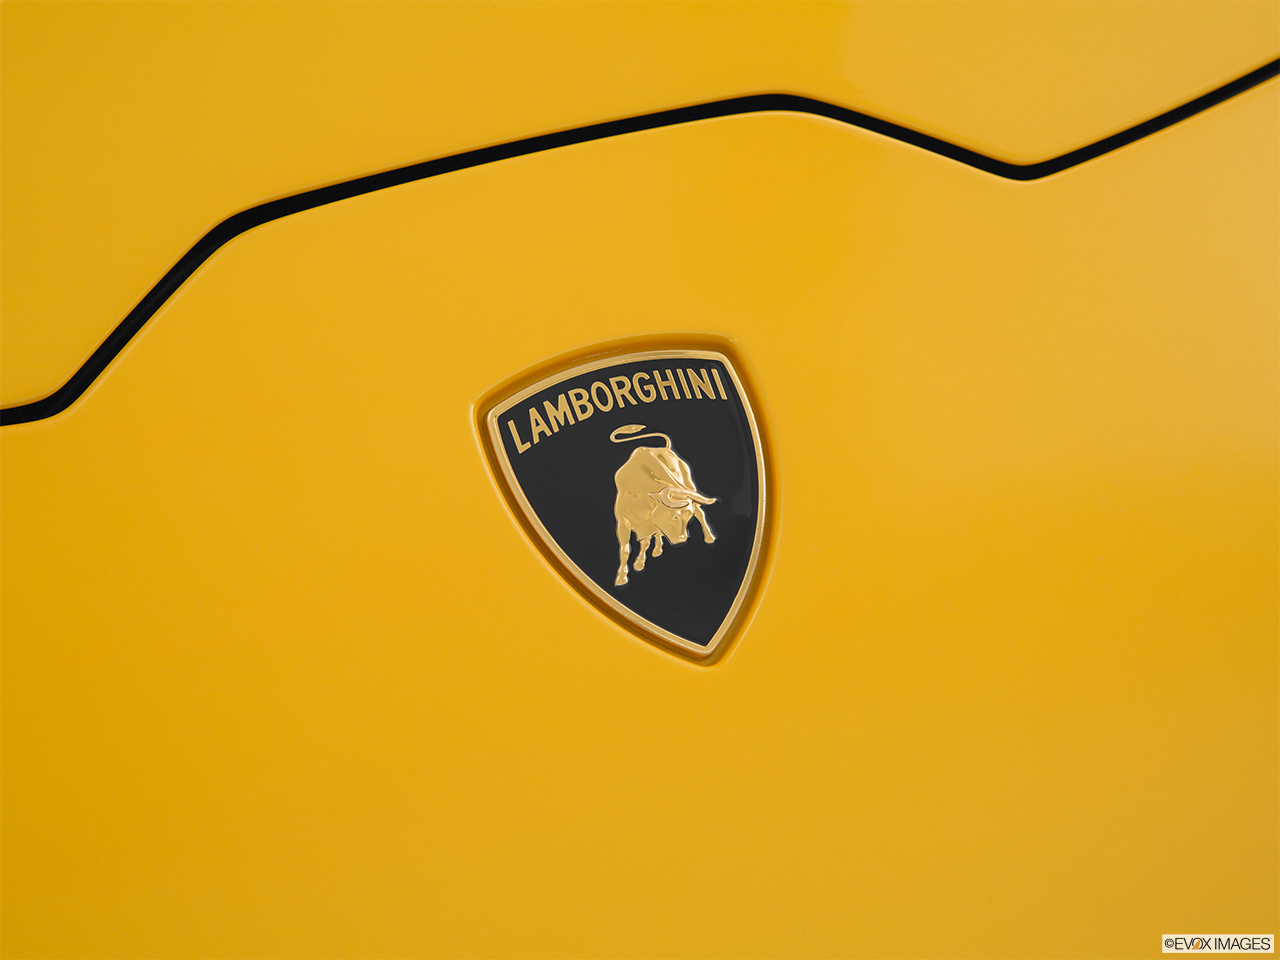 2015 Lamborghini Huracan LP 610-4 Rear manufacture badge/emblem